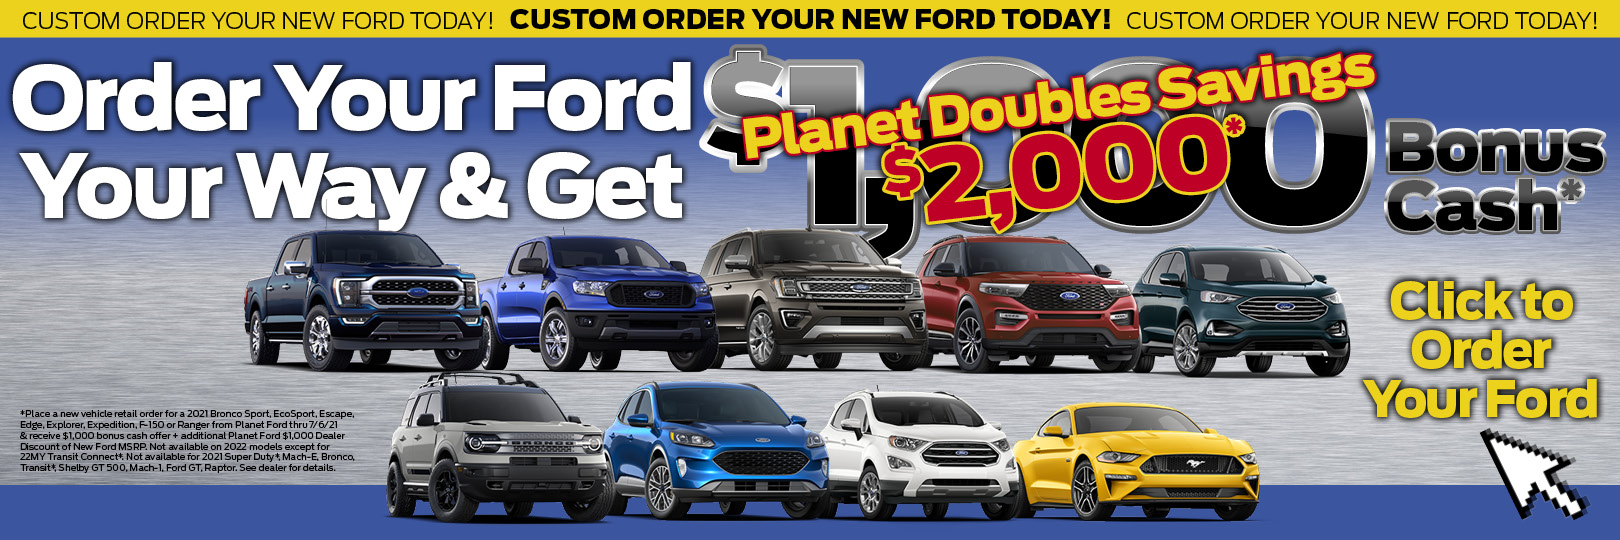 210624 P45 Special Order Your Ford Your Way Get Site